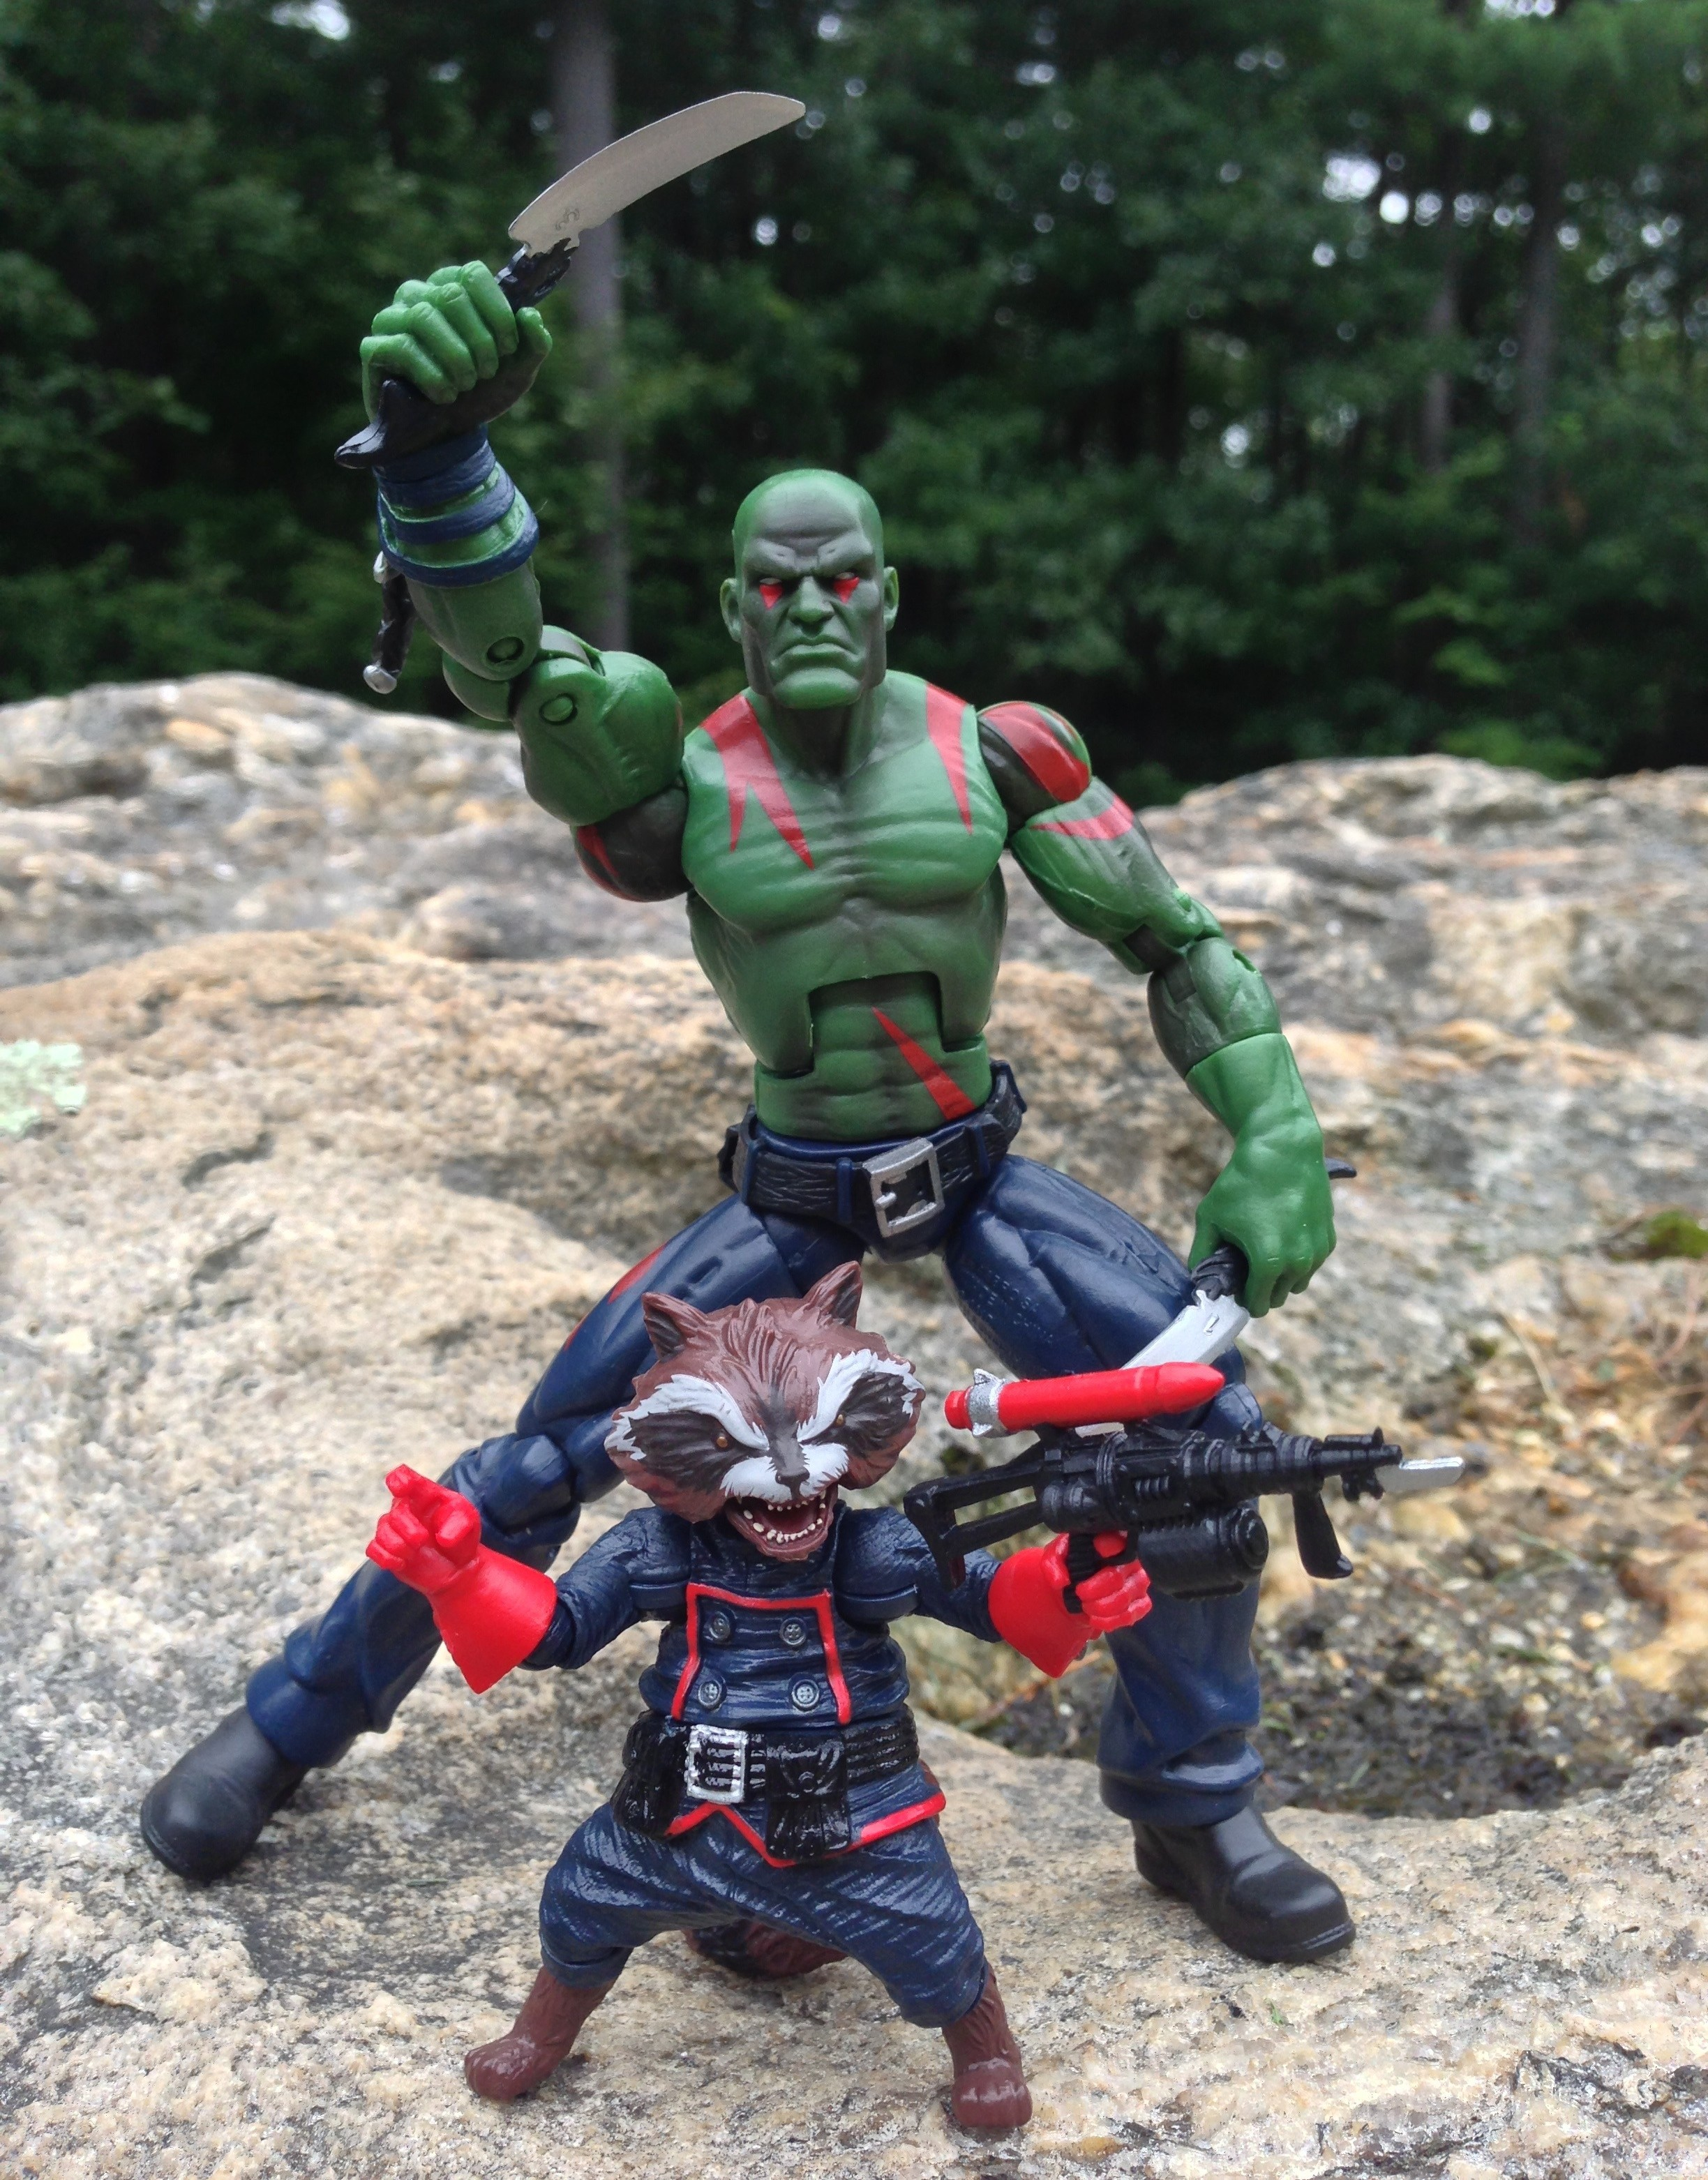 Marvel Legends Guardians of the Galaxy Figures Drax and Rocket Raccoon